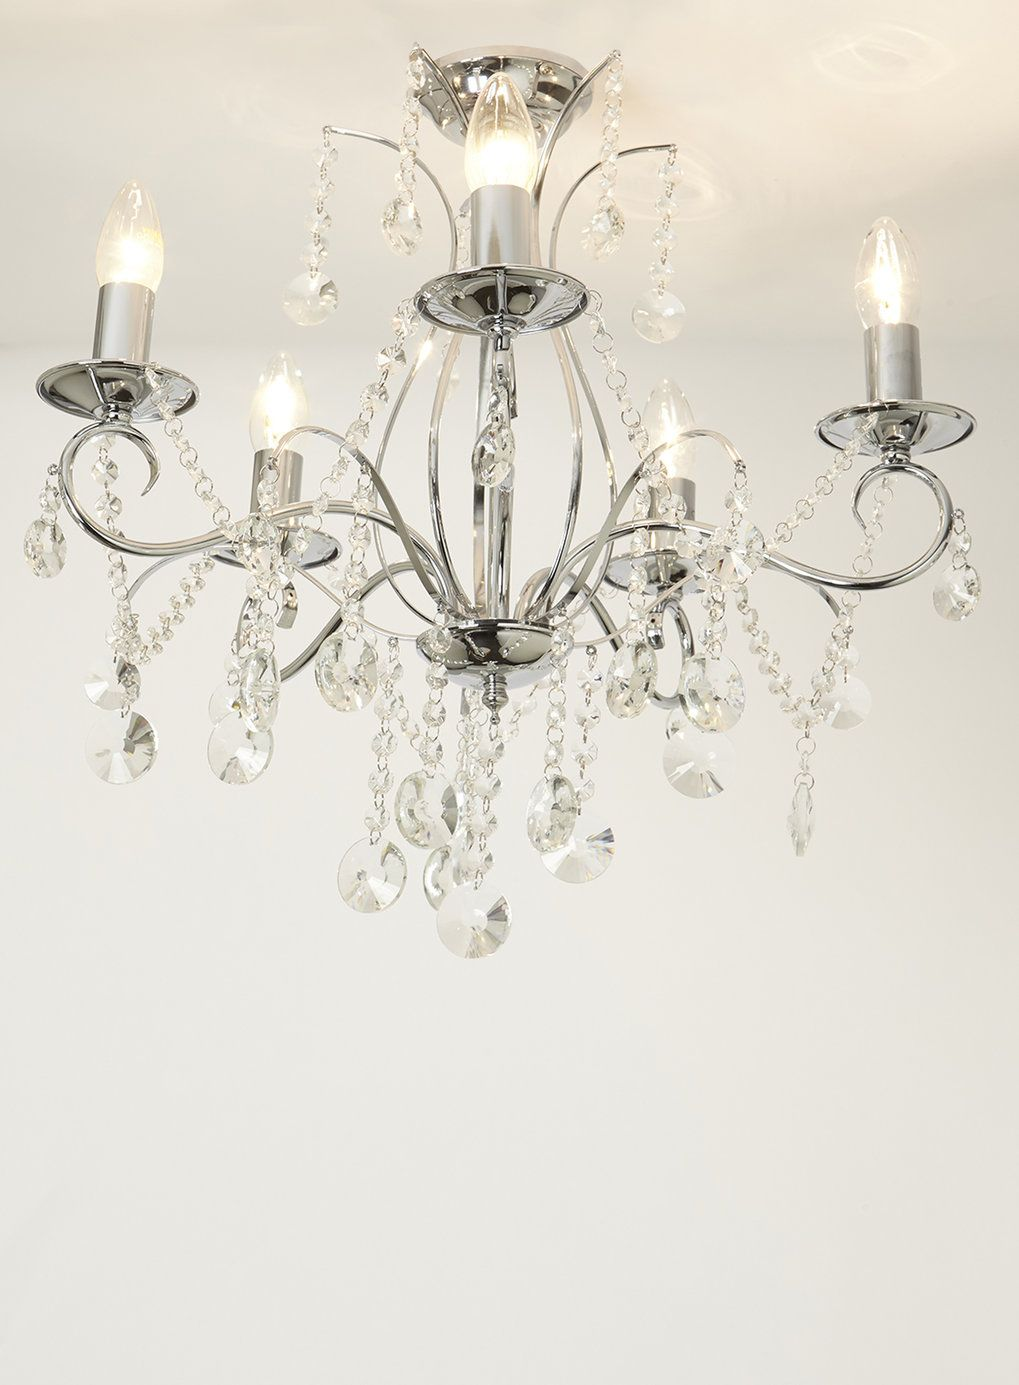 Bathroom Chandeliers Bhs connie chandelier flush light - bhs | home decor | pinterest